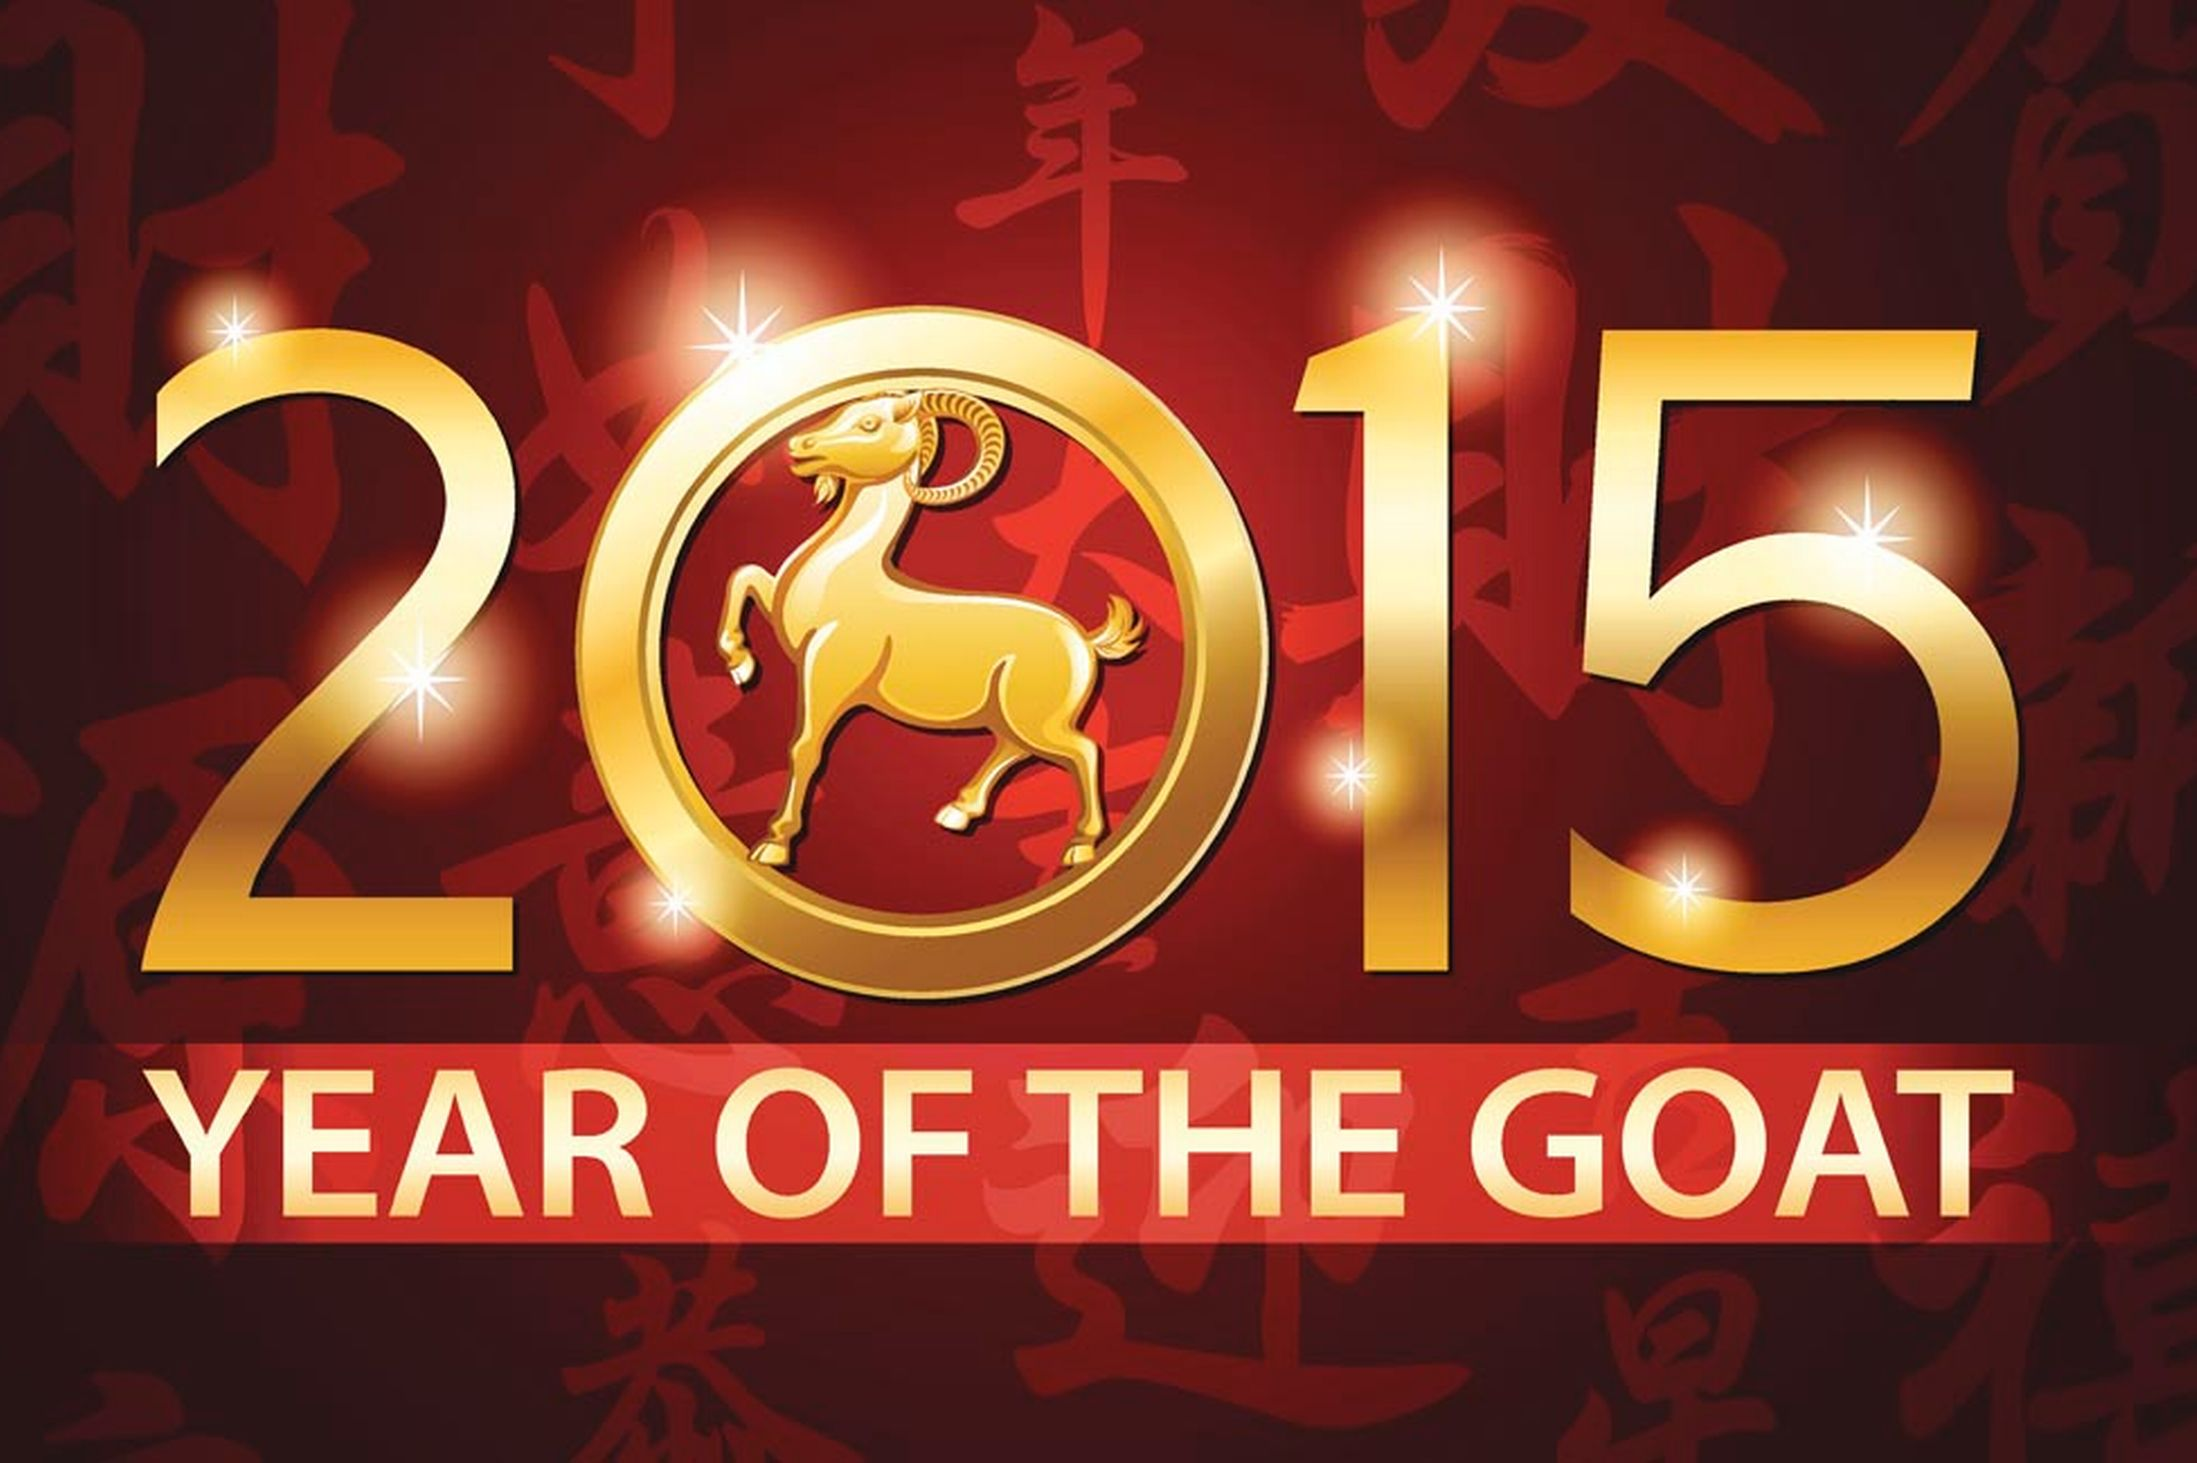 Golden New Year Goat 2015